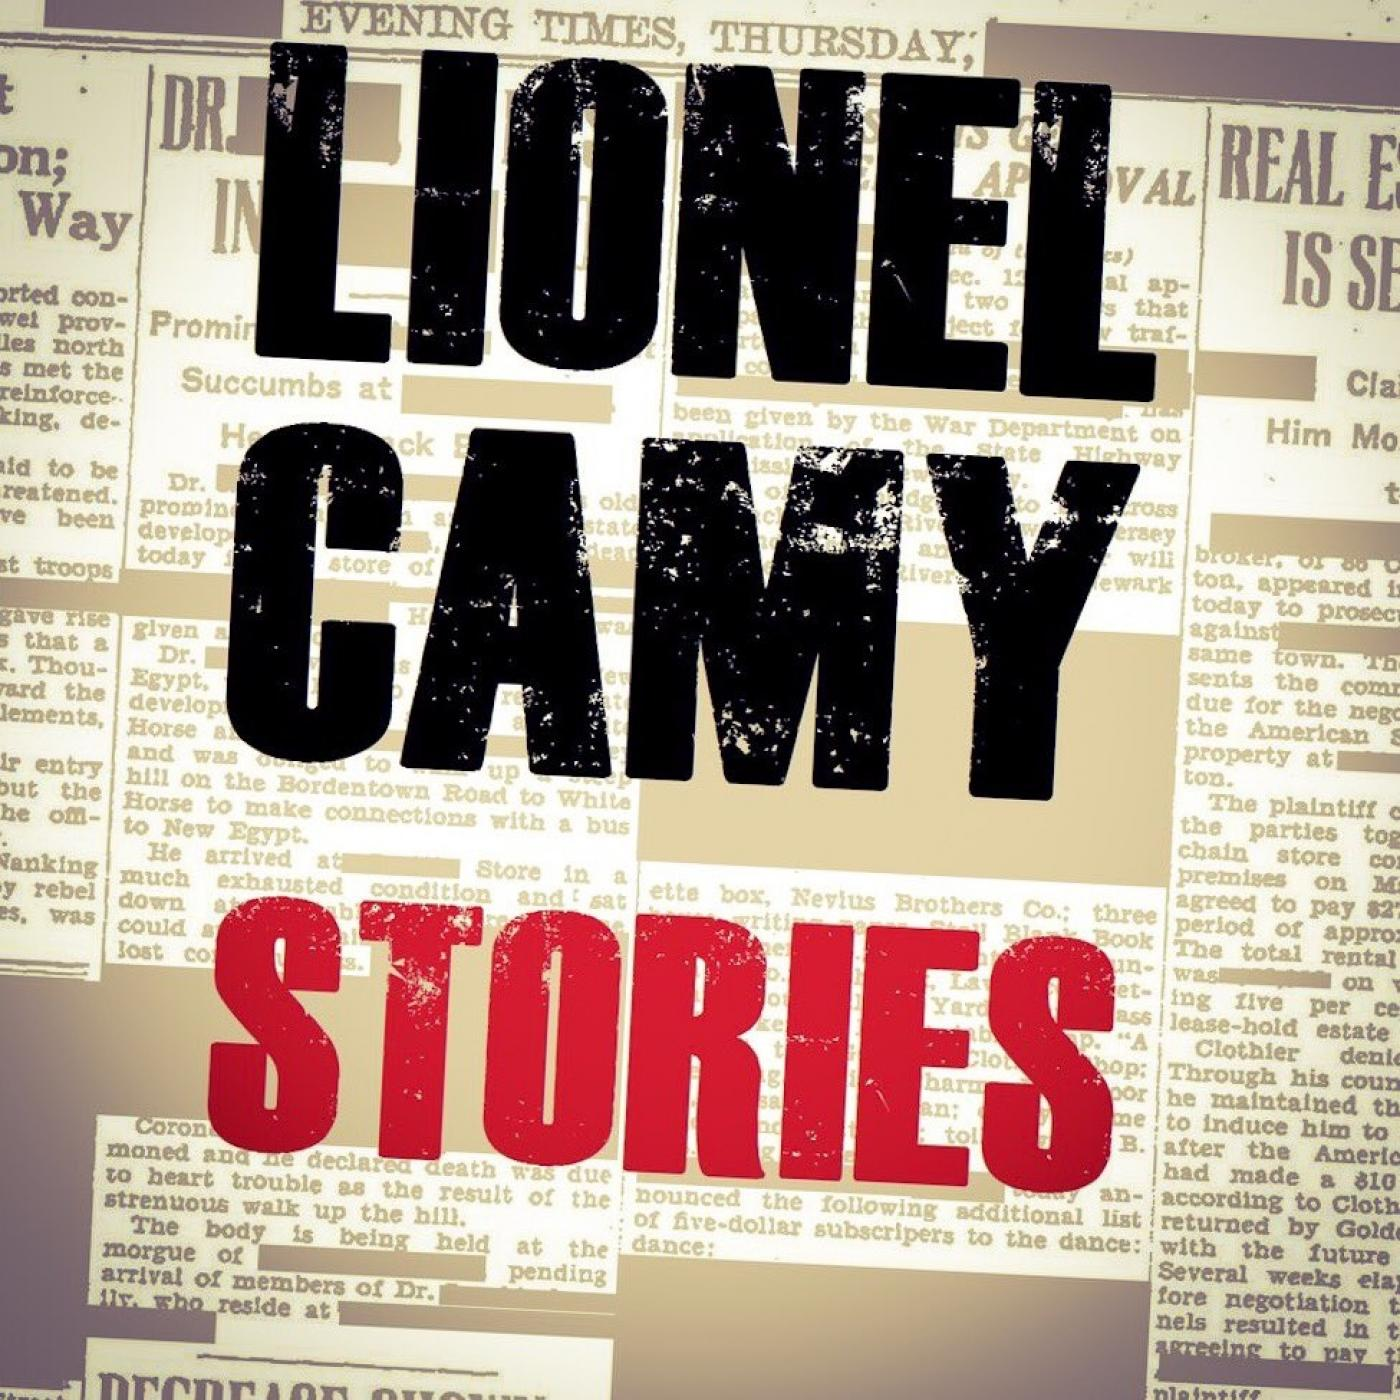 Lionel Camy Stories